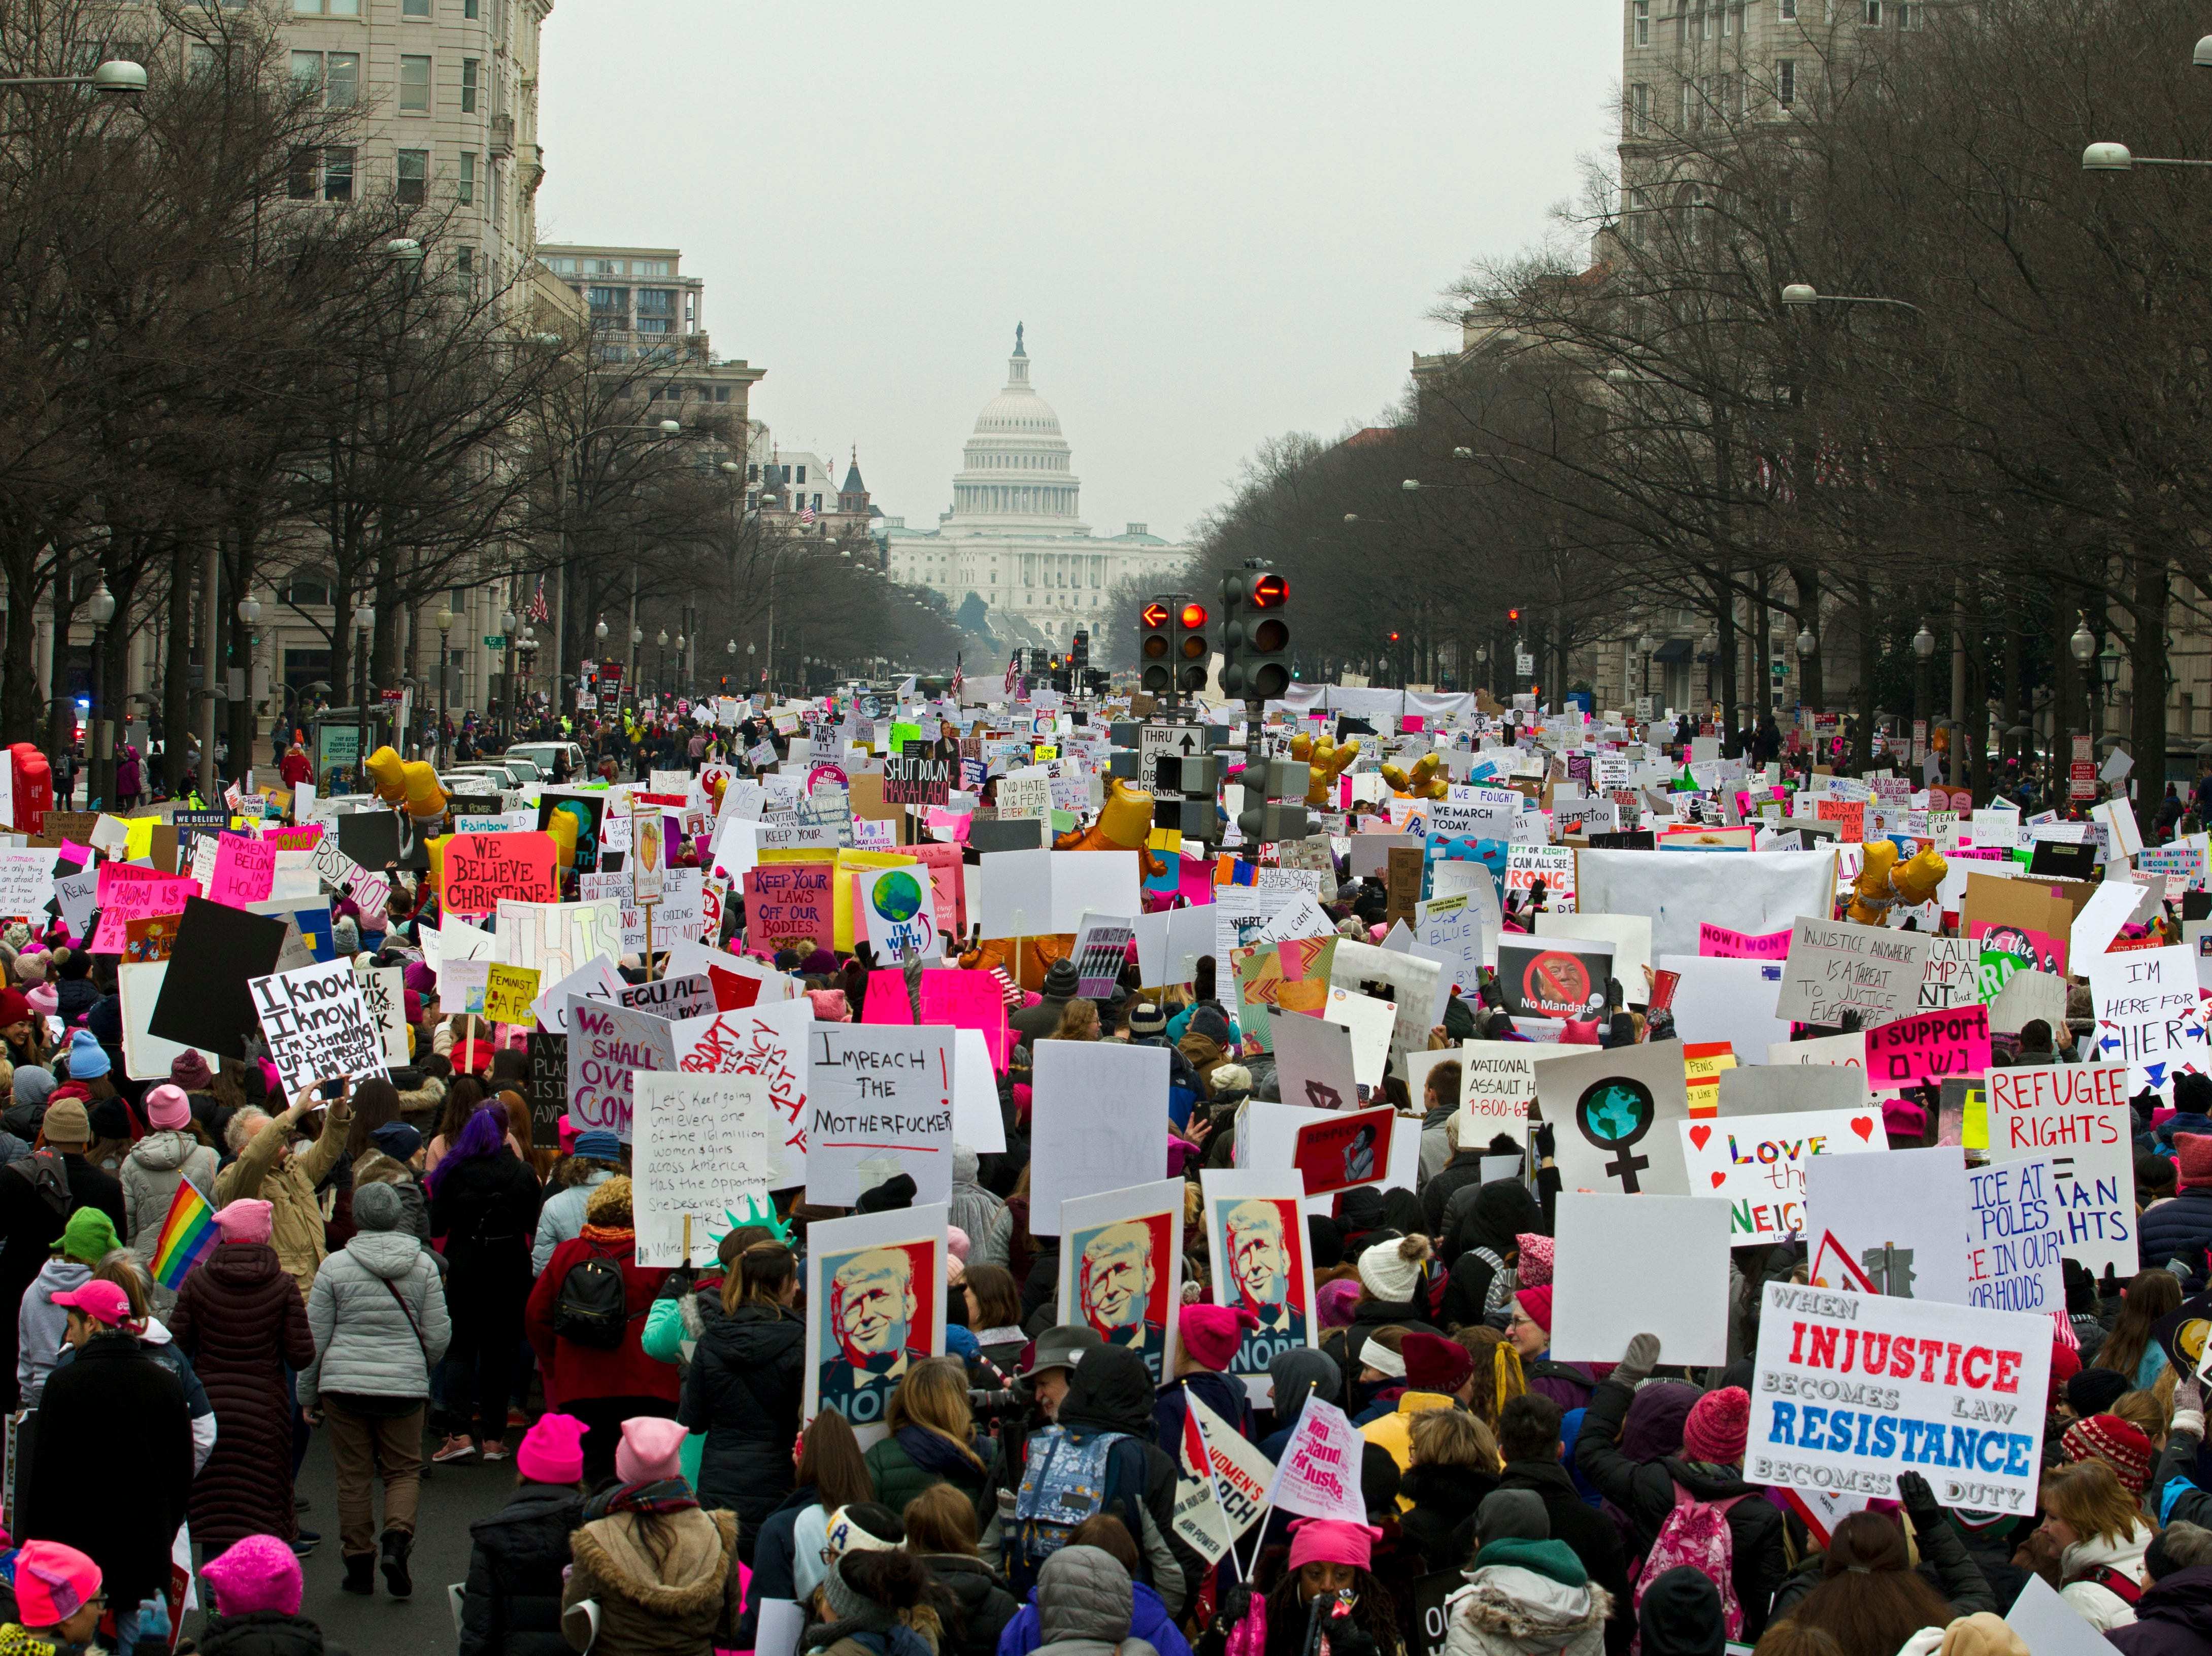 Demonstrators march on Pennsylvania Av. during the Women's March in Washington on Saturday, Jan. 19, 2019.  Organizers had originally planned to gather Saturday on the National Mall, but with the forecast calling for snow and freezing rain Saturday and the National Park Service no longer plowing the snow, the march's location and route was altered this week to start at Freedom Plaza and march down Pennsylvania Avenue past the Trump International Hotel.